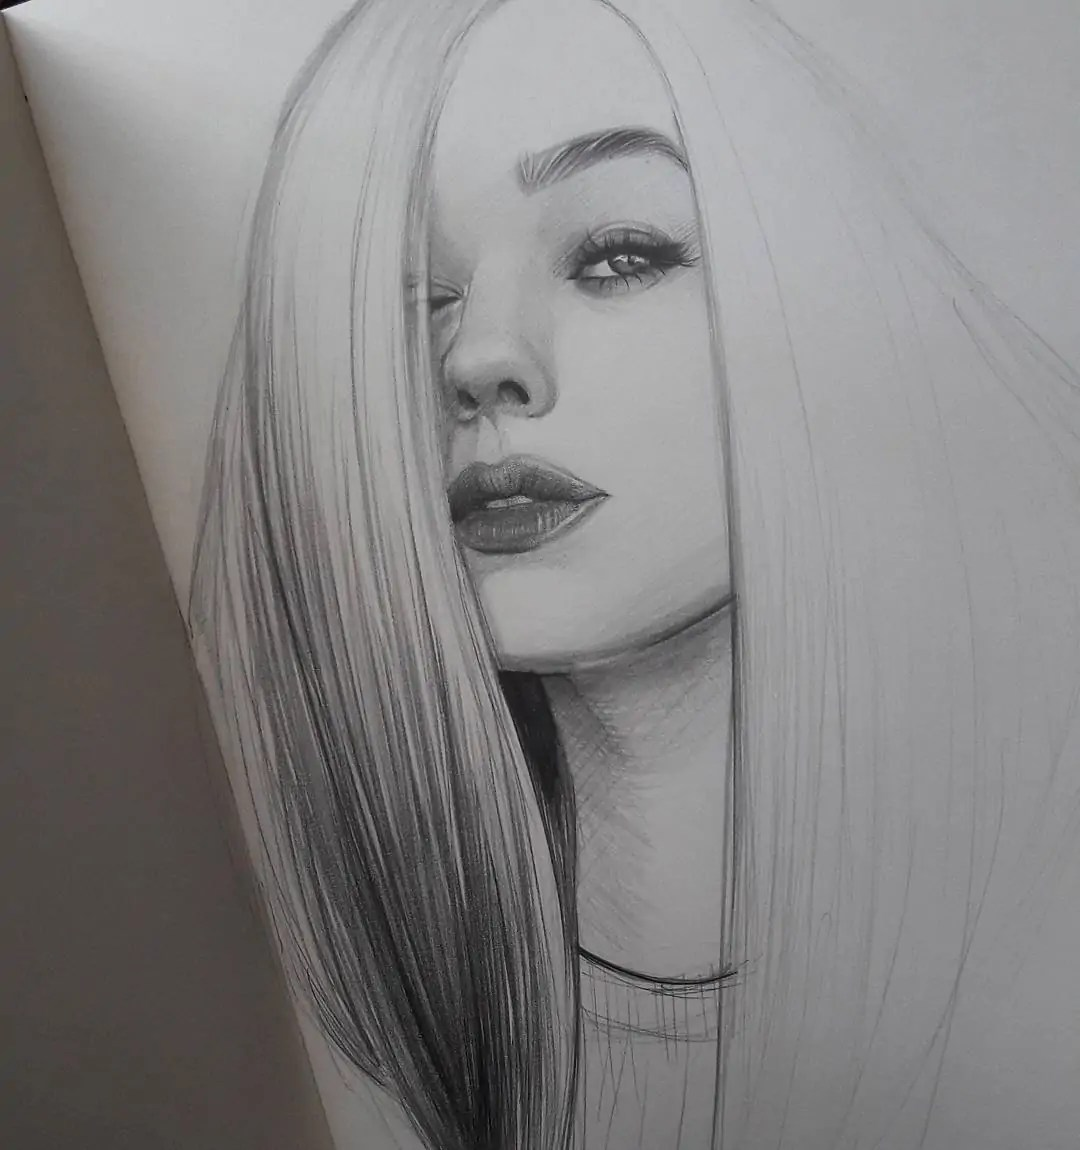 100+ Stunning Realistic Portrait Drawings 337